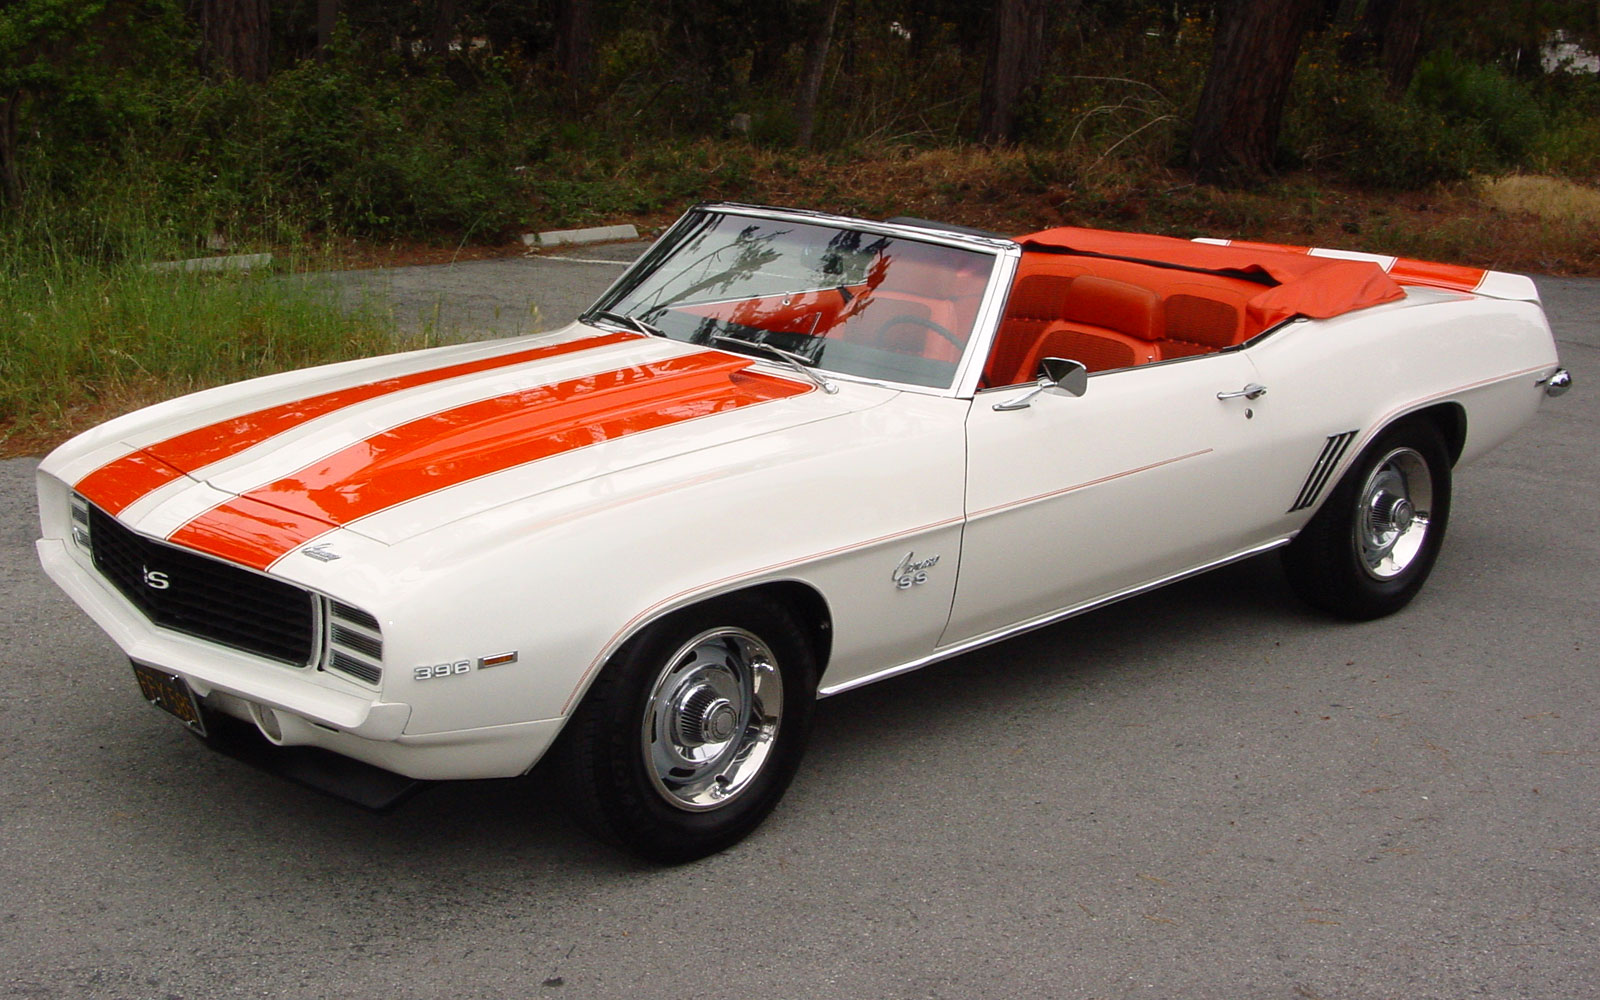 Classic Muscle Cars For Sale >> 1969 Camaro Z11 Indy Pace Car - My Dream Car